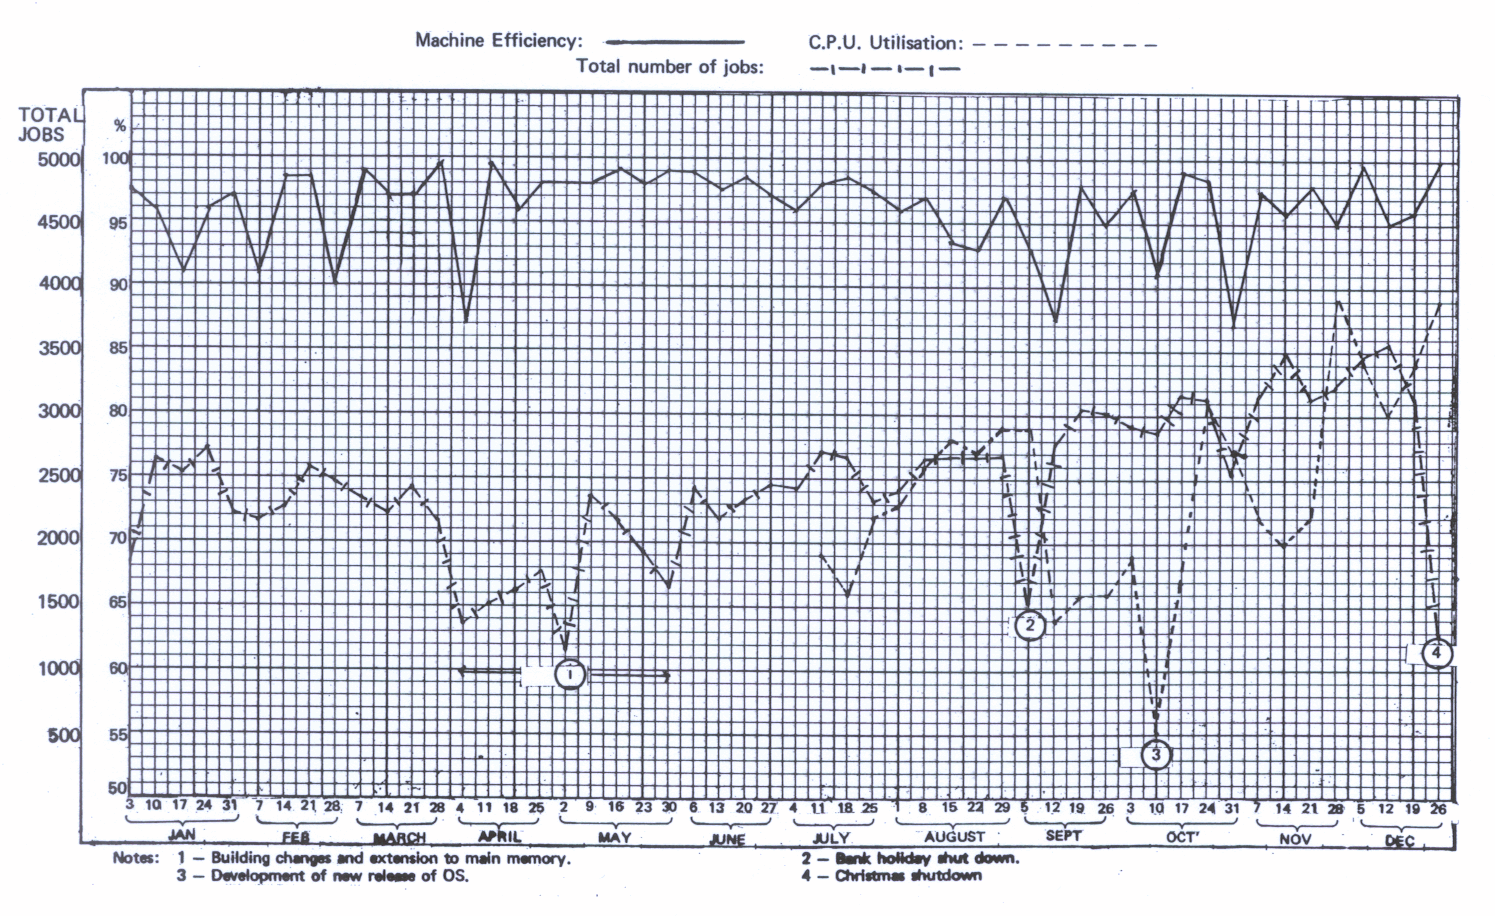 Figure 93. Central computer machine statistics during the period 27.12.68 to 26.12.69